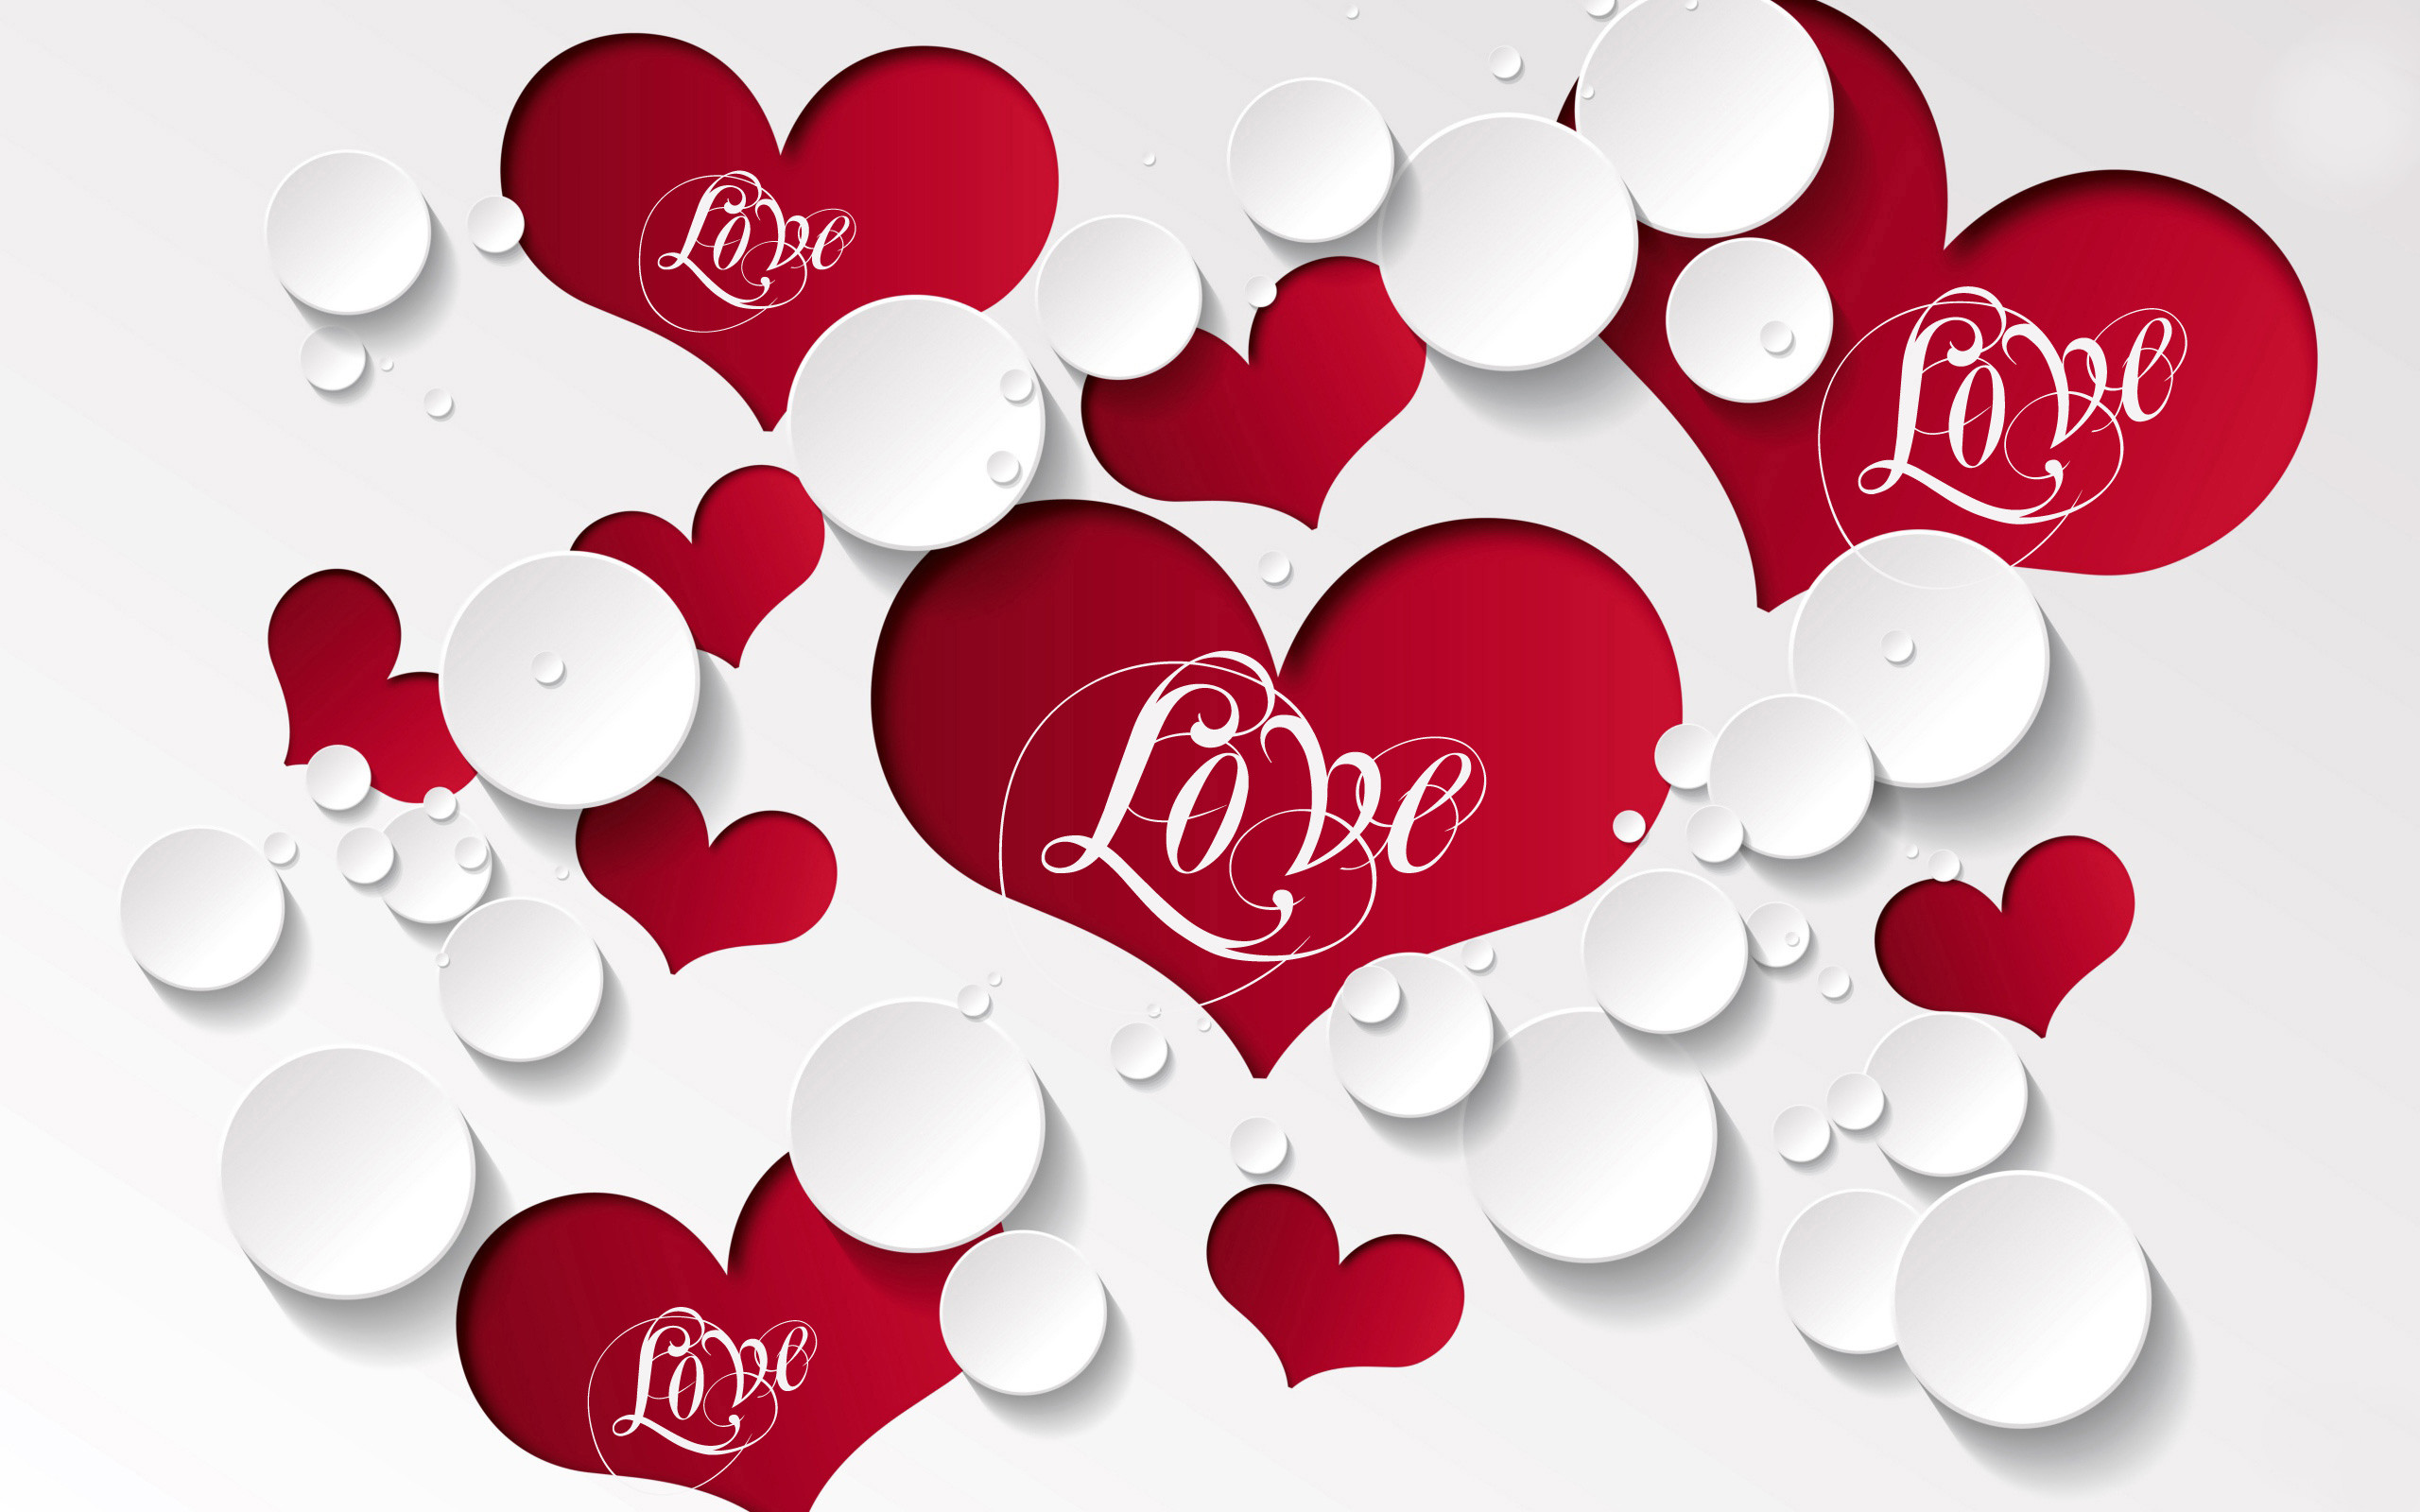 love hearts background (41+ images)